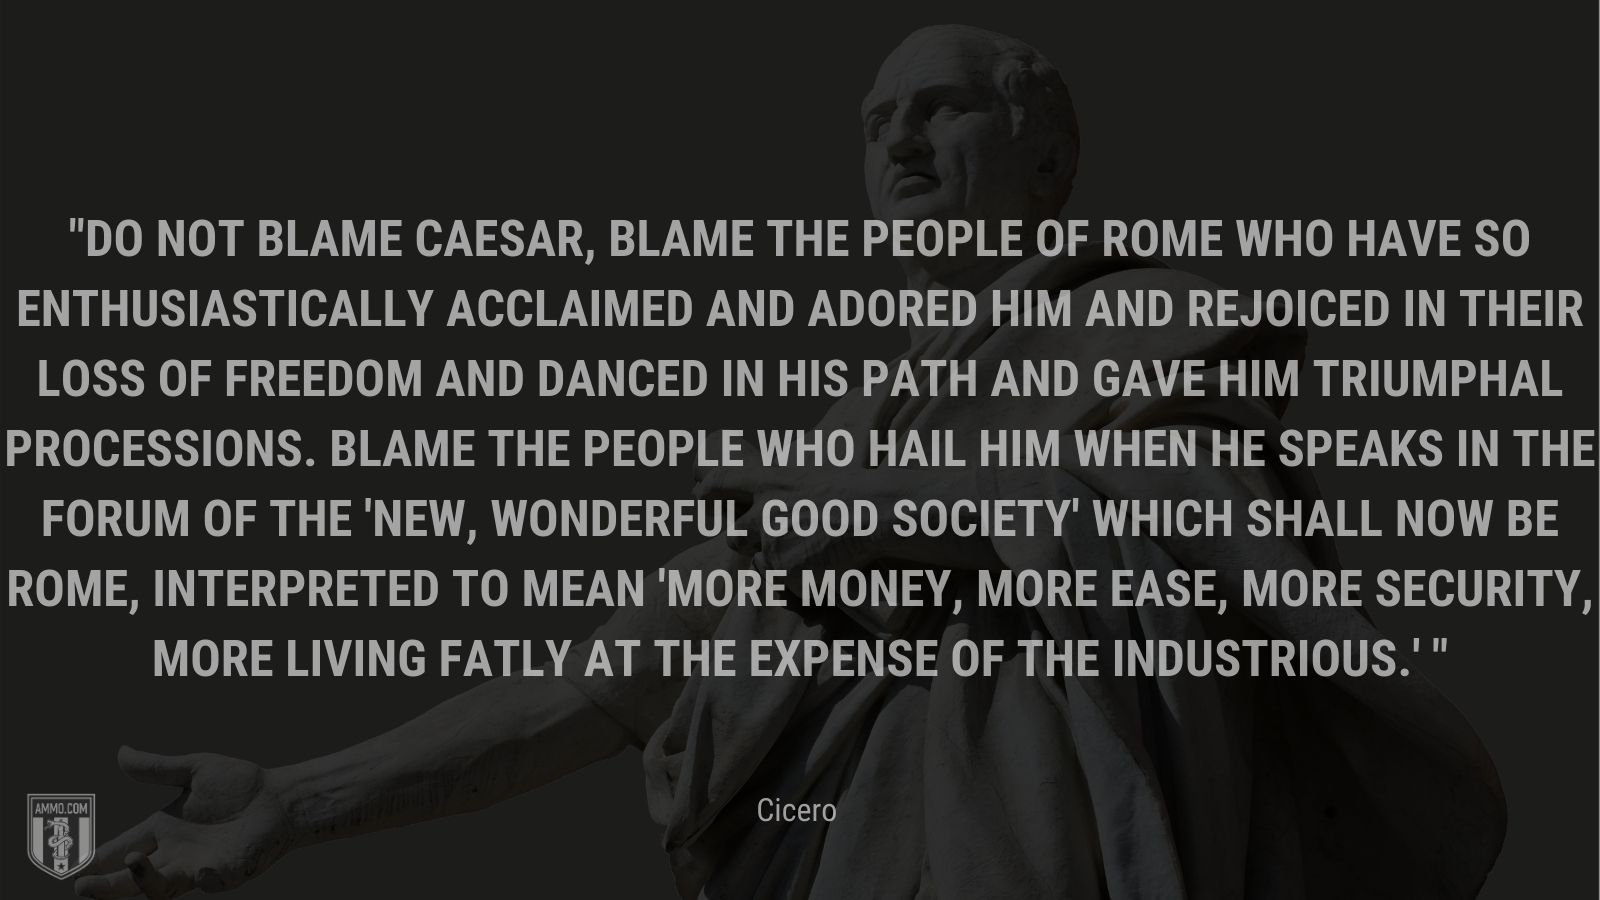 """""""Do not blame Caesar, blame the people of Rome who have so enthusiastically acclaimed and adored him and rejoiced in their loss of freedom and danced in his path and gave him triumphal processions. Blame the people who hail him when he speaks in the Forum of the 'new, wonderful good society' which shall now be Rome, interpreted to mean 'more money, more ease, more security, more living fatly at the expense of the industrious.' - Cicero"""